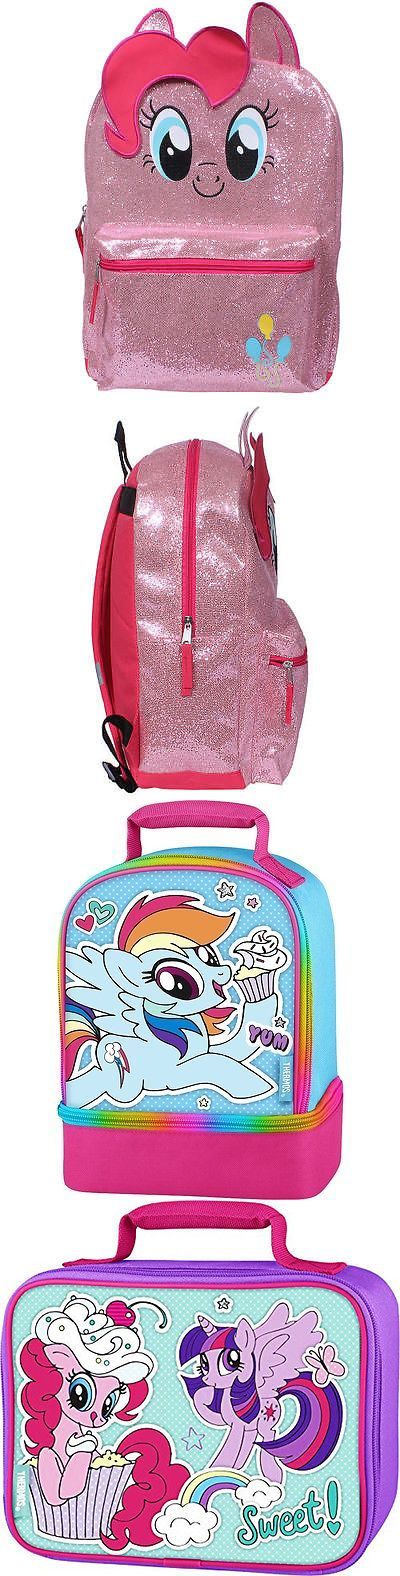 Backpacks 57917: My Little Pony Pinkie Pie 16 Full-Size Backpack W Optional Insulated Lunch Box -> BUY IT NOW ONLY: $32.98 on eBay!